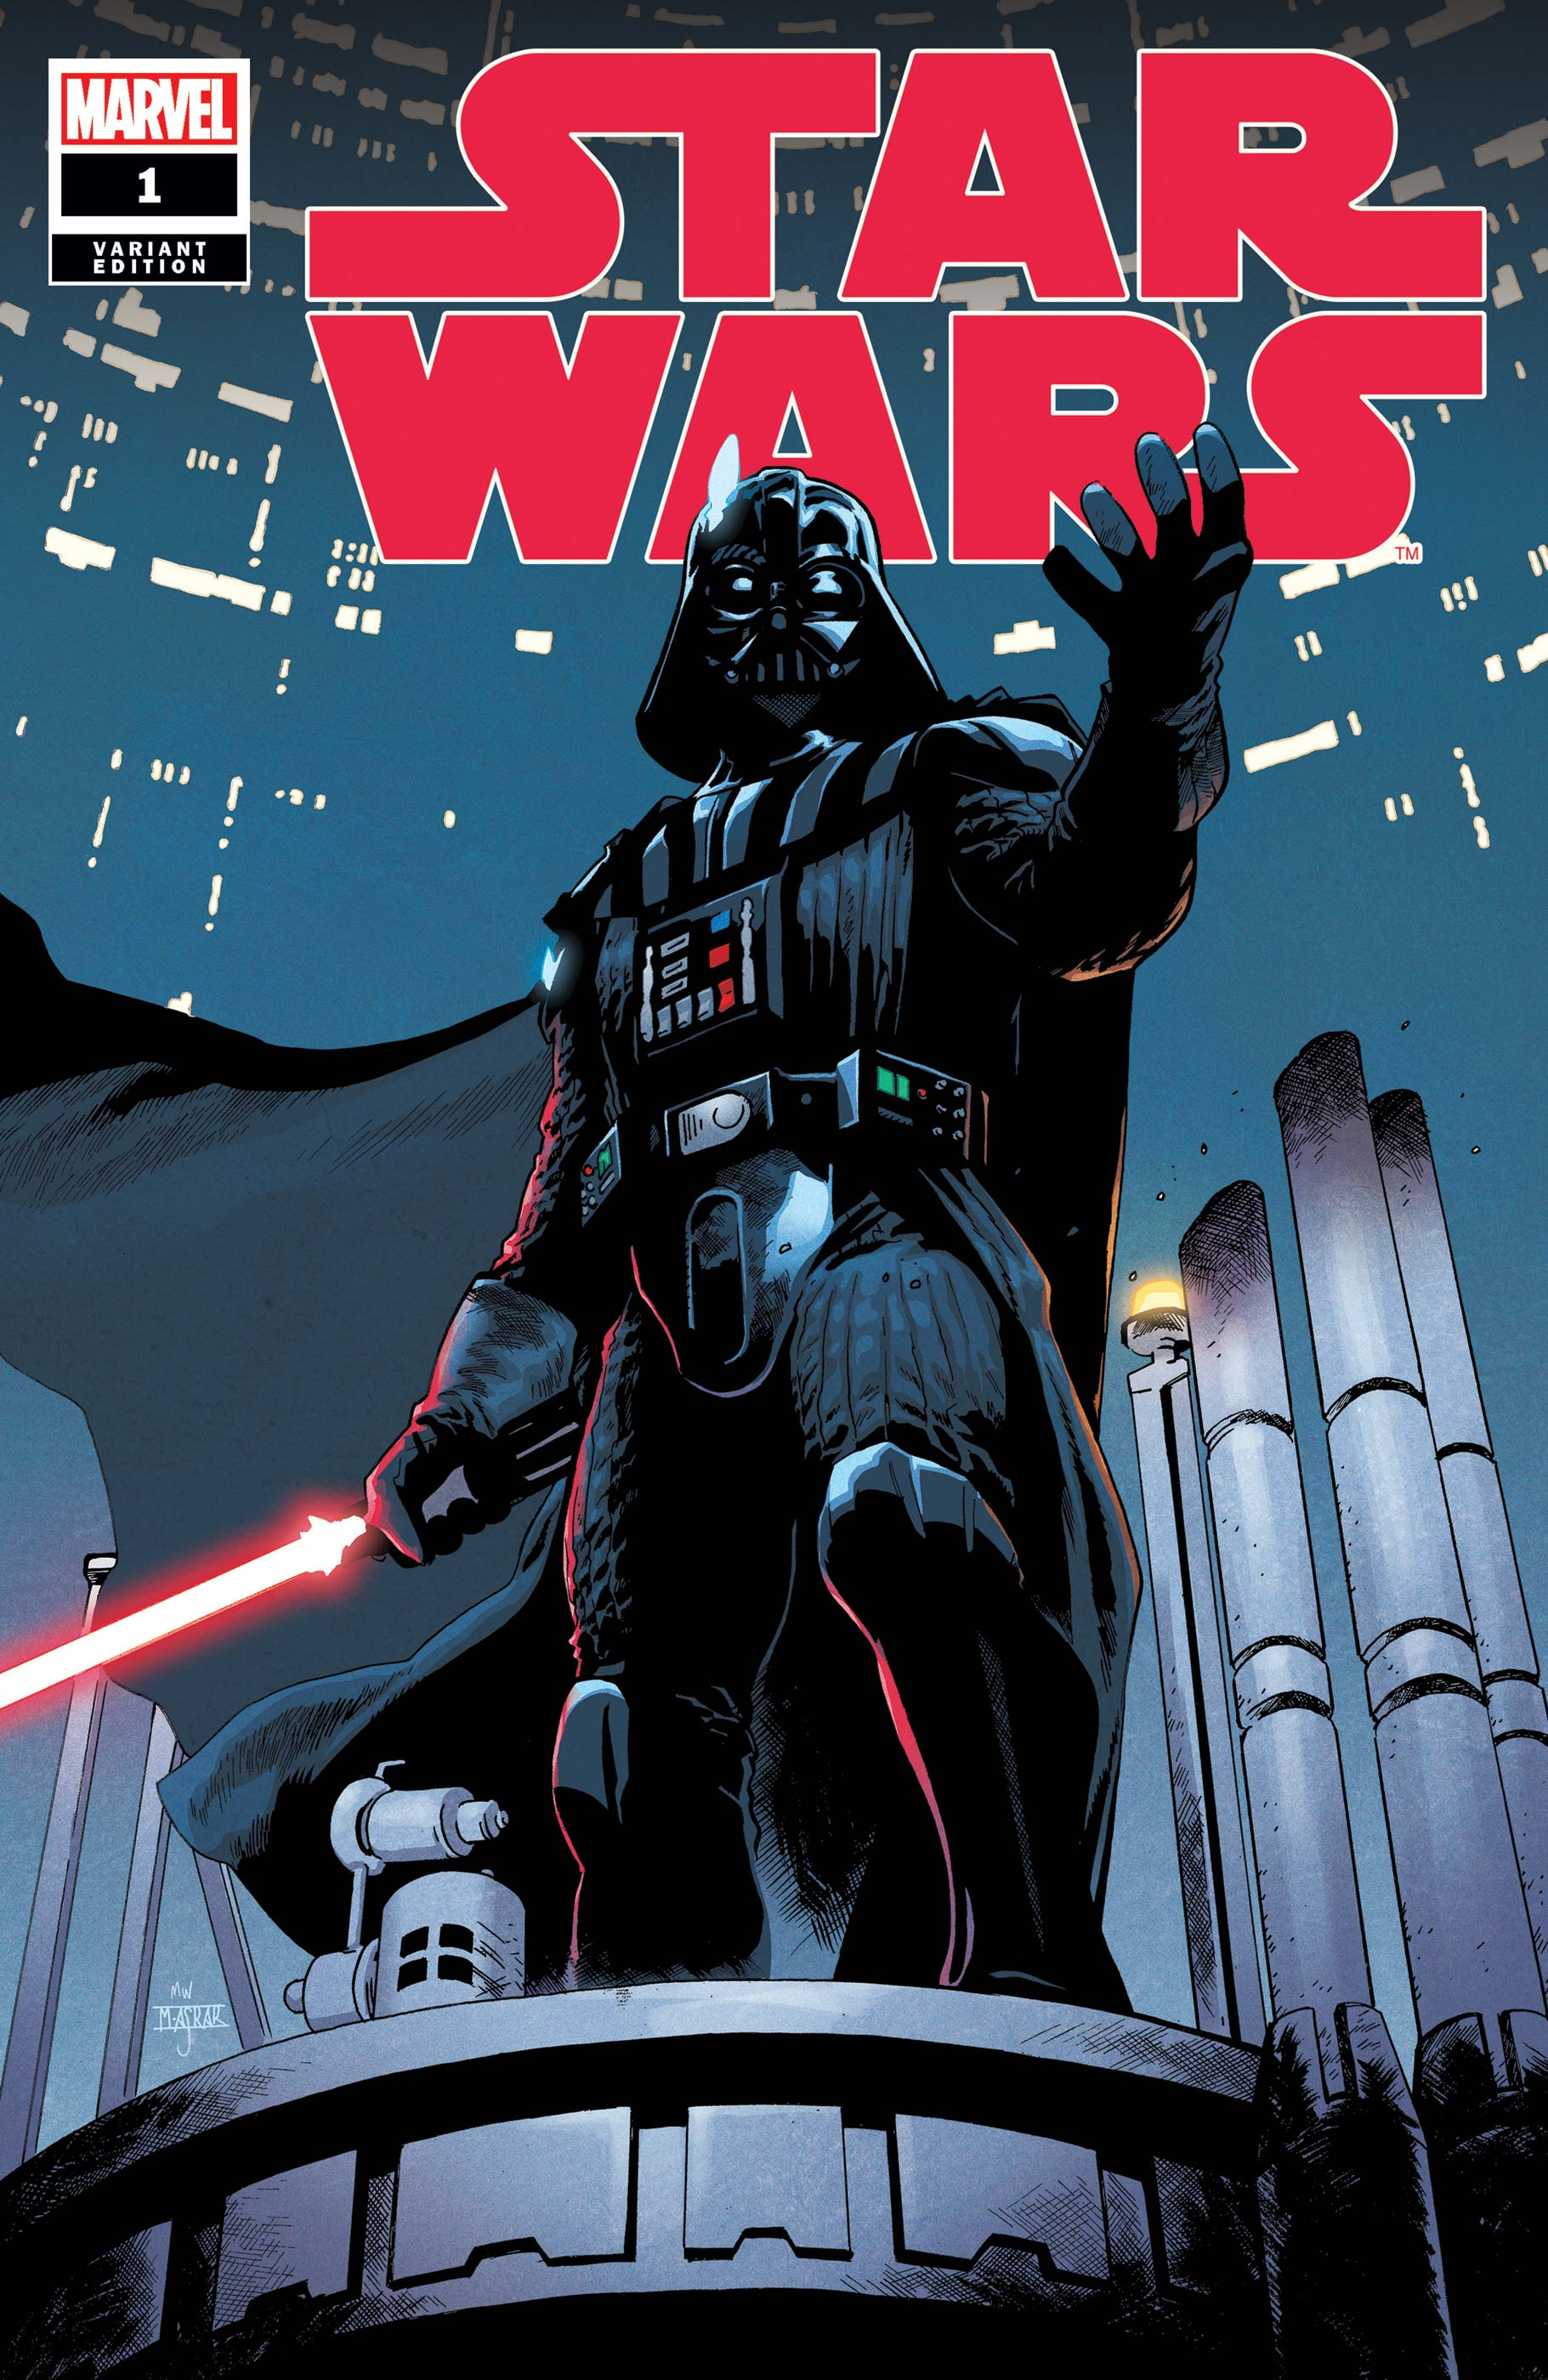 Star Wars (2020) #1 Cover